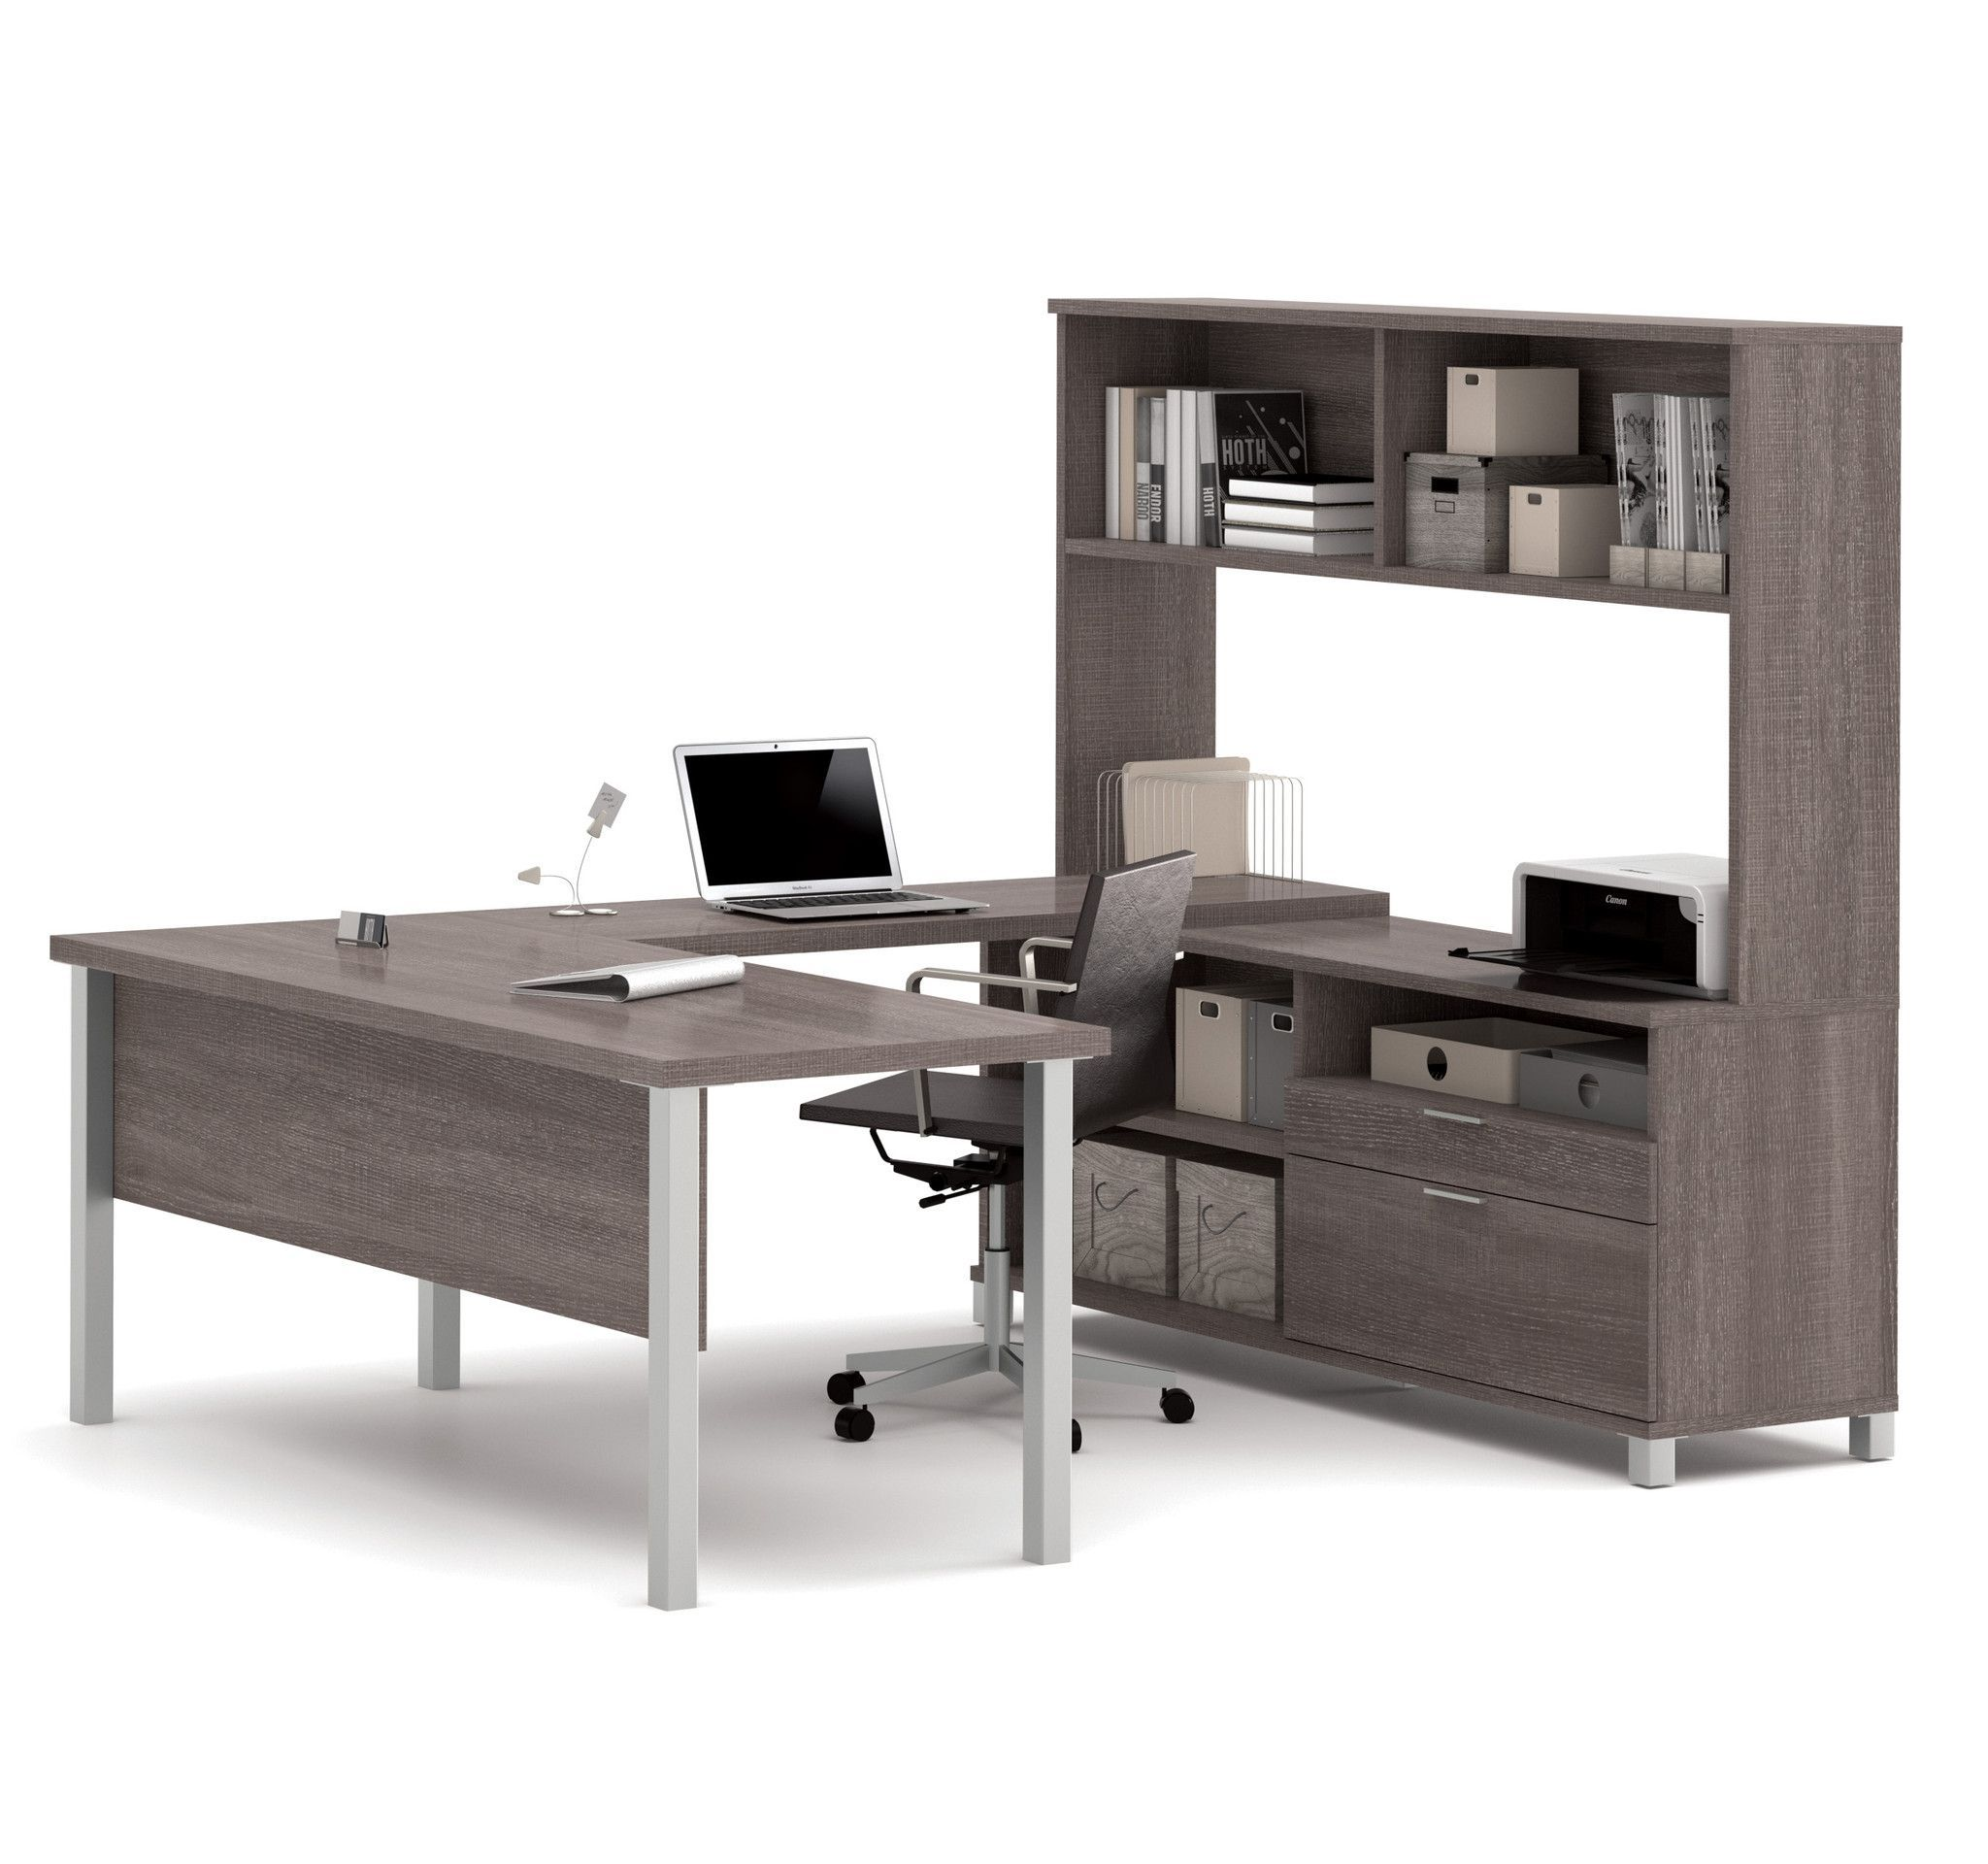 desk espresso hub com with executive grain kitchen charger hutch dining onespace amazon usb and wood dp